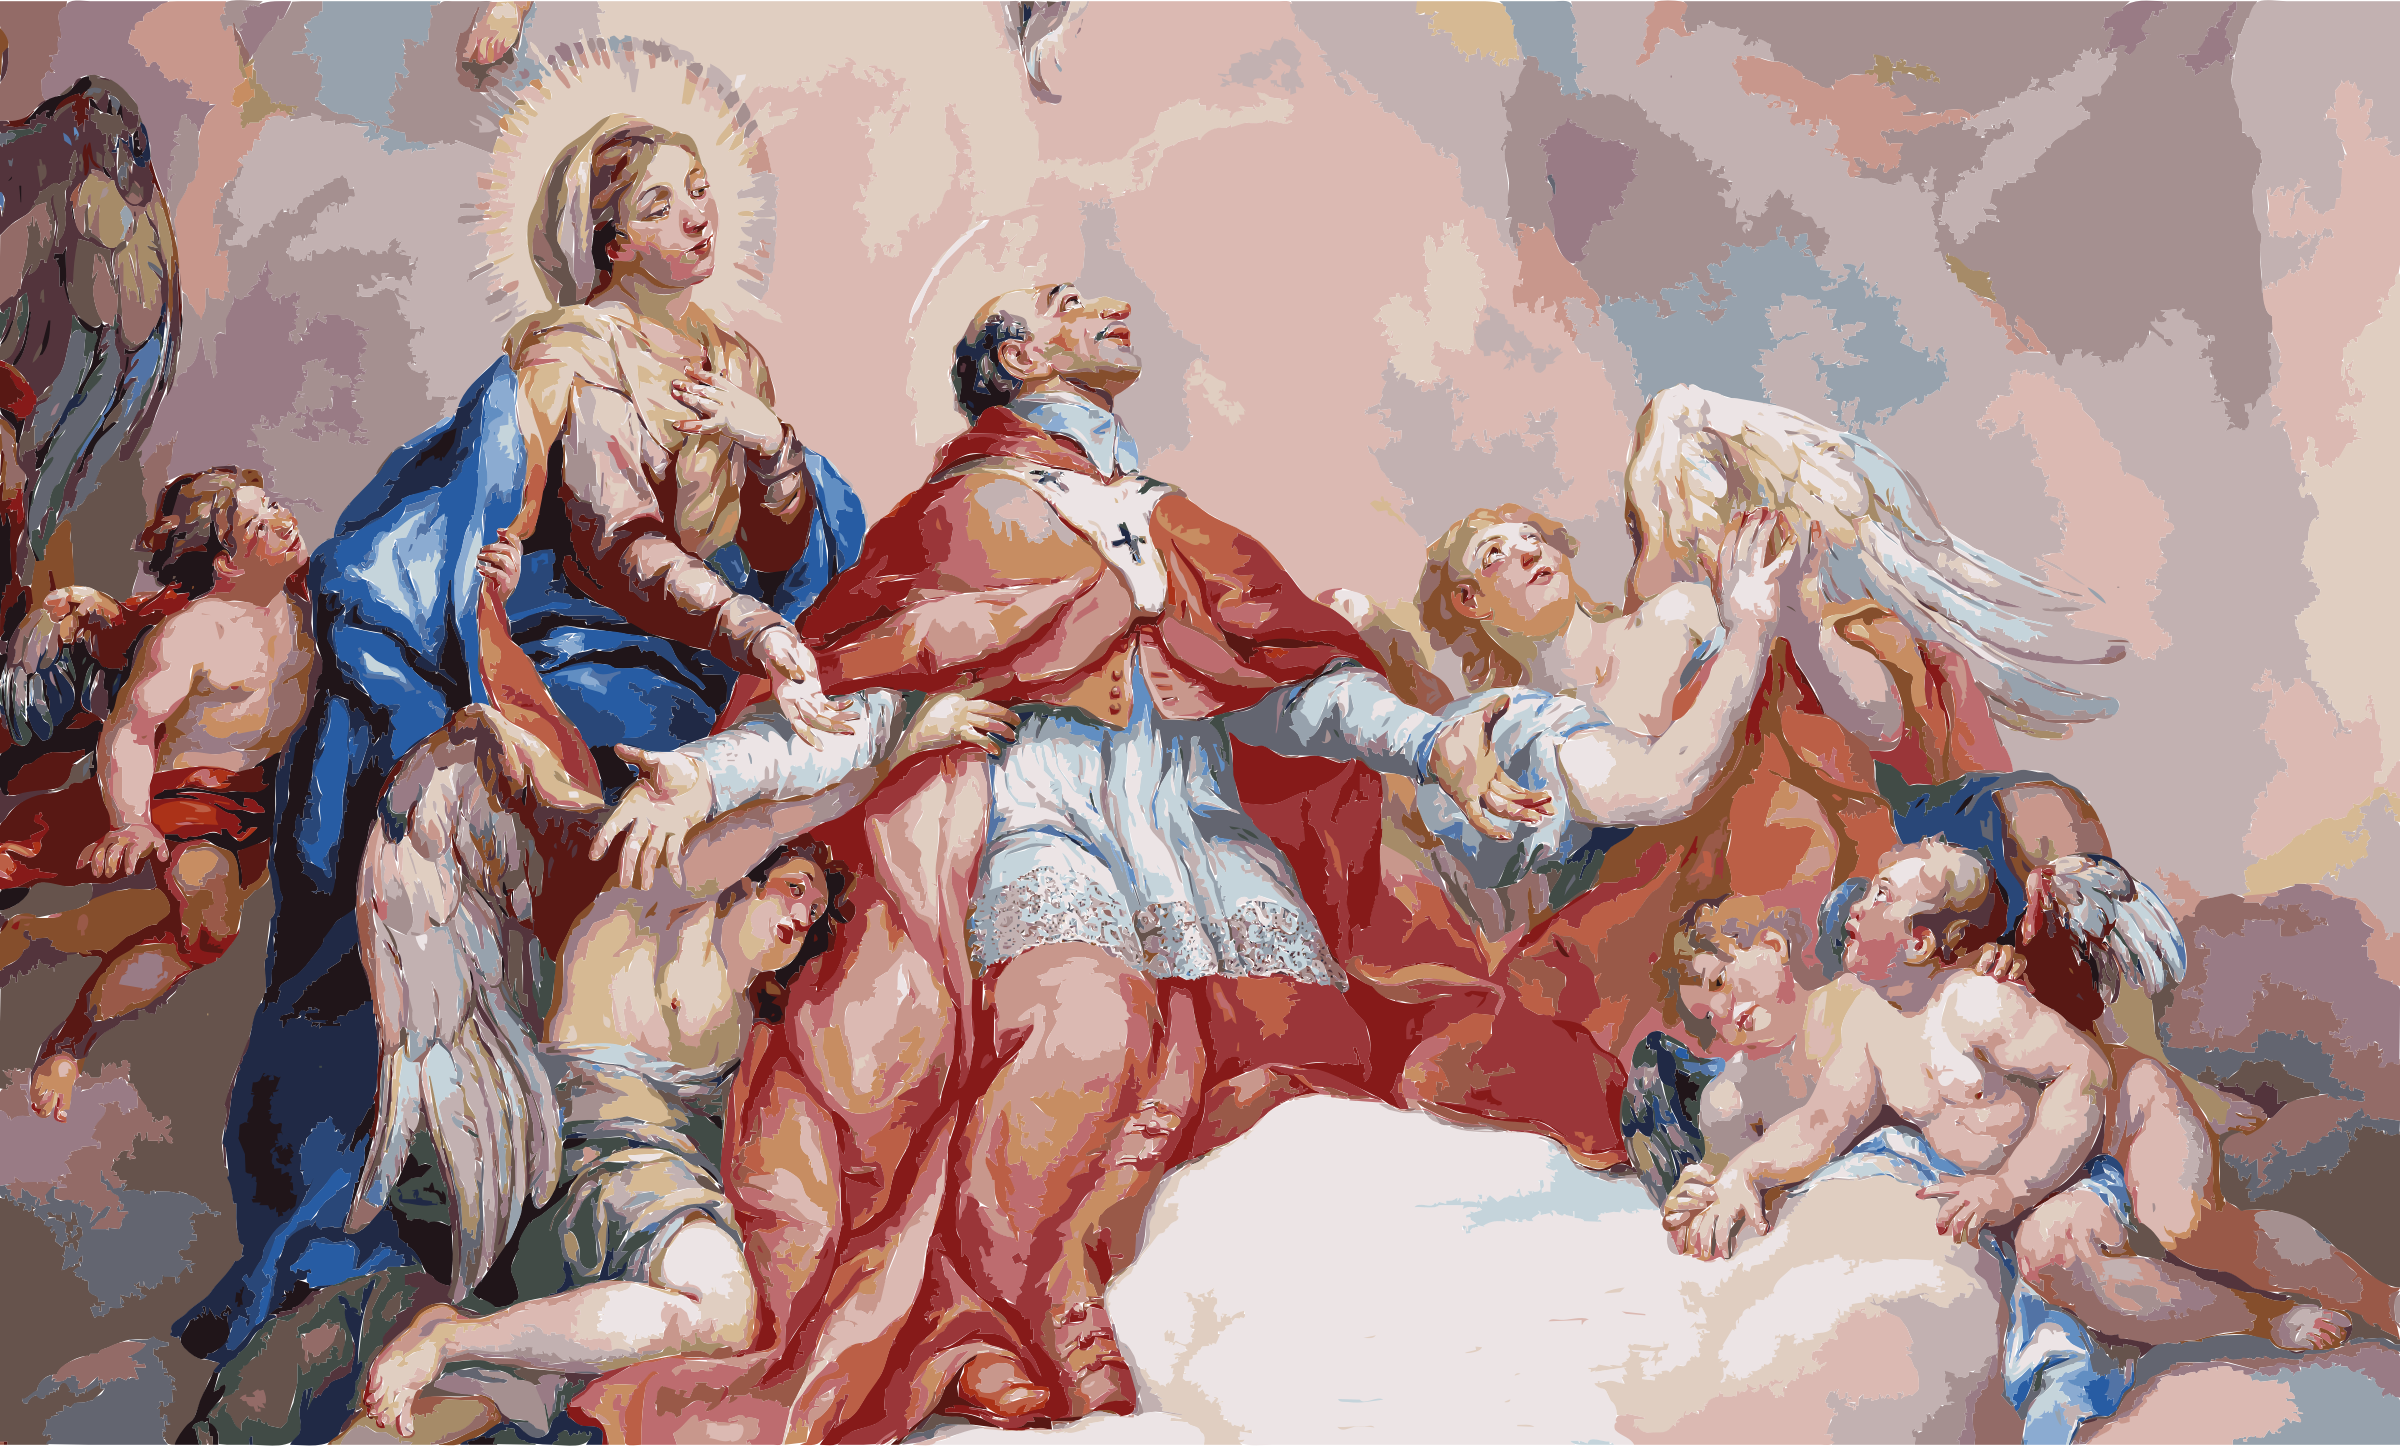 Intercession of Charles Borromeo supported by the Virgin Mary - Detail Rottmayr Fresco - Karlskirche - Vienna by 3we2nn+8w9uc0fun68aw